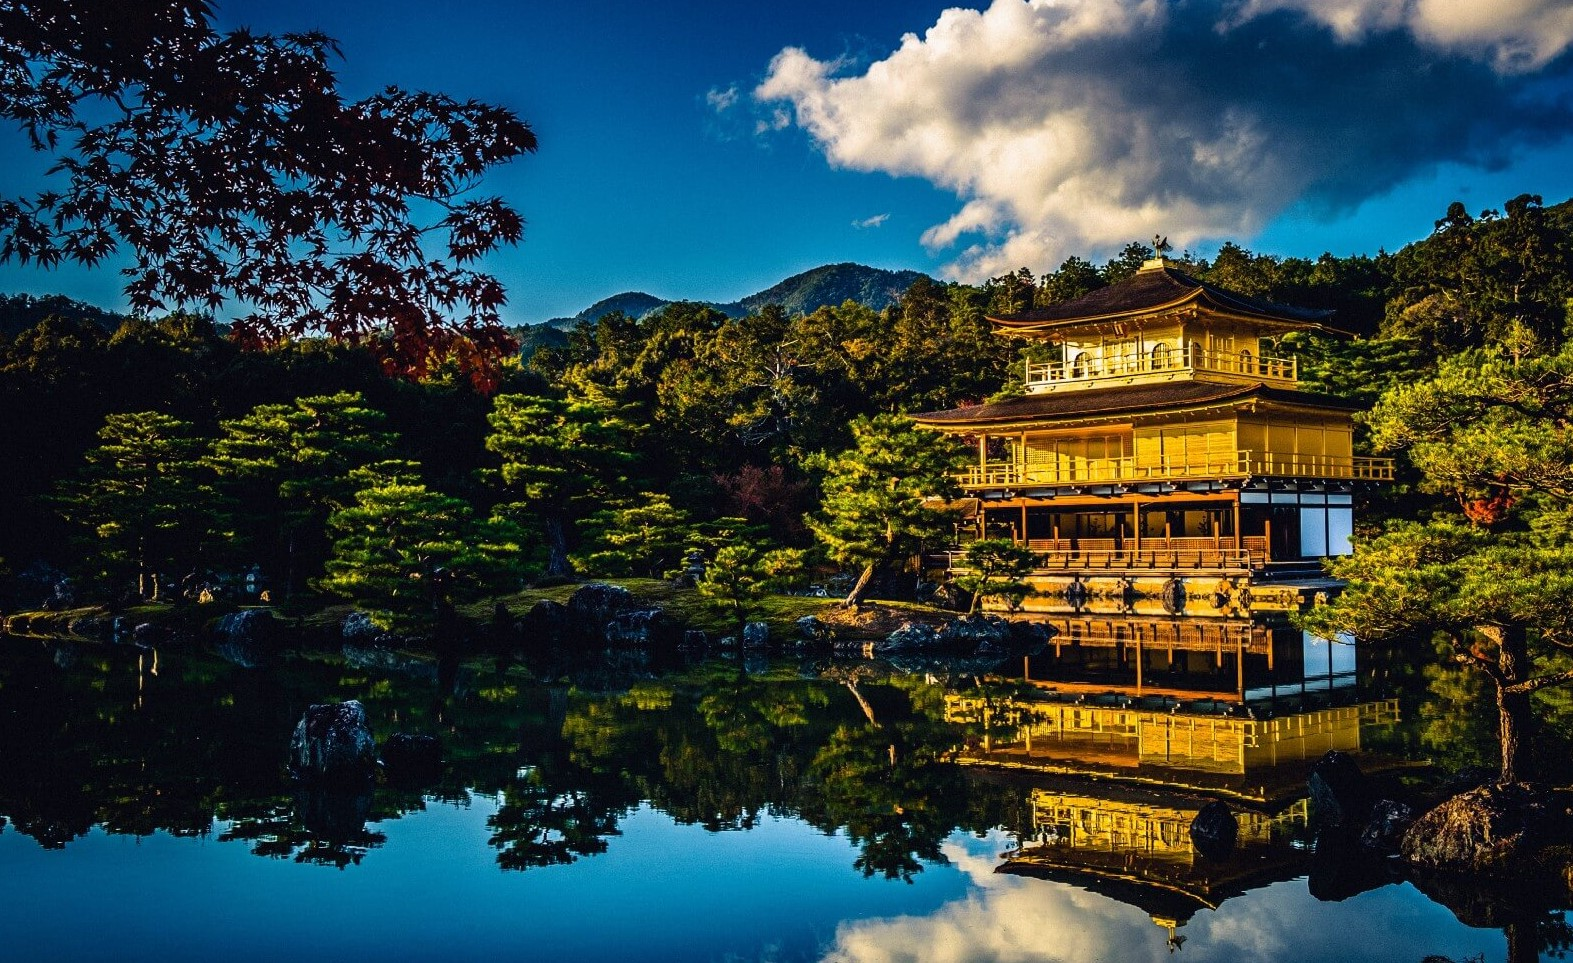 Kinkakuji Temple a.k.a. the Golden Pavilion